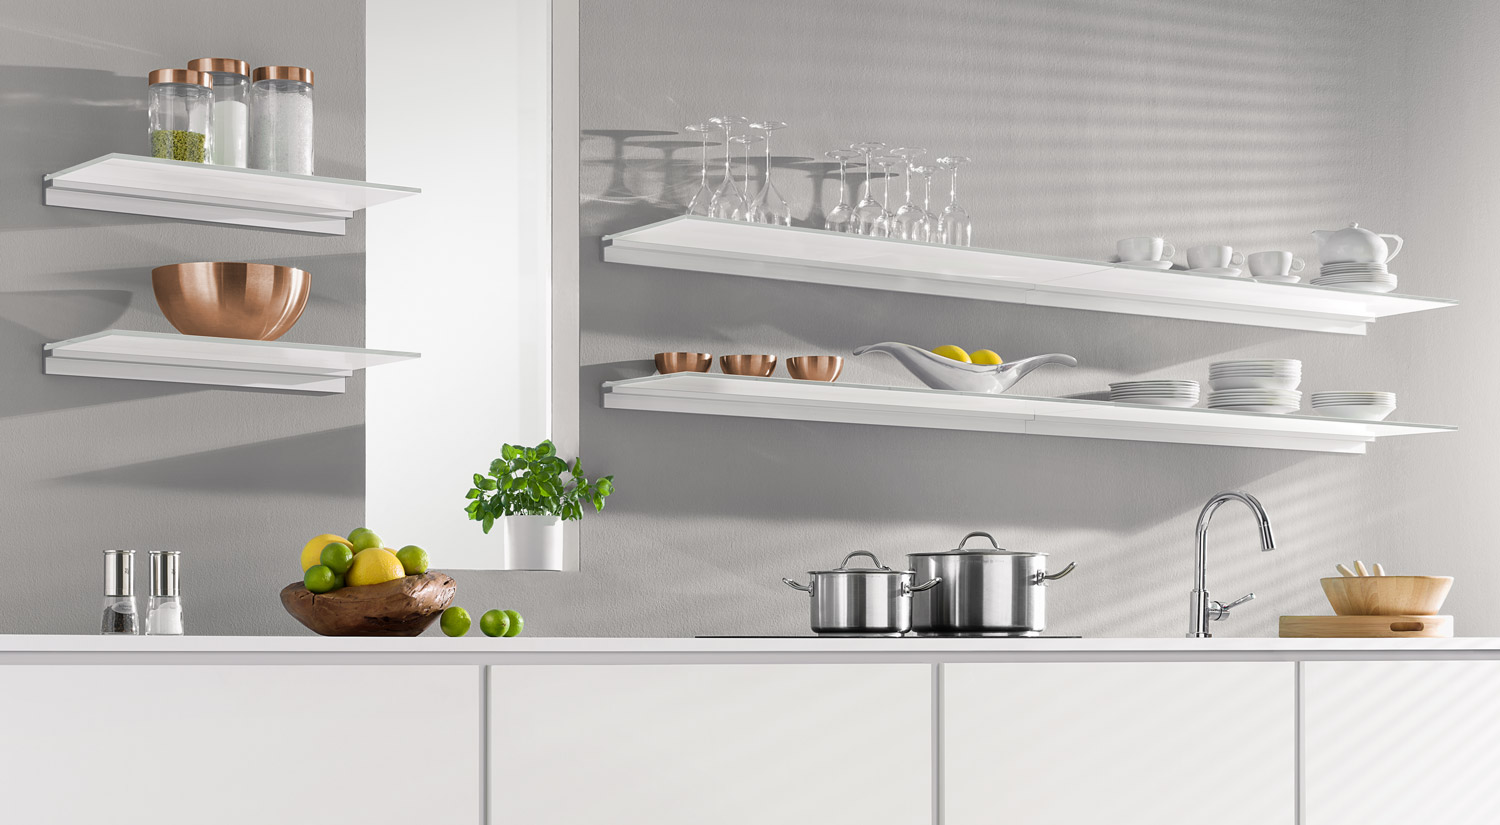 Glass shelf boards - MAXI glass shelf board with CUBE glass shelf bracket in the kitchen